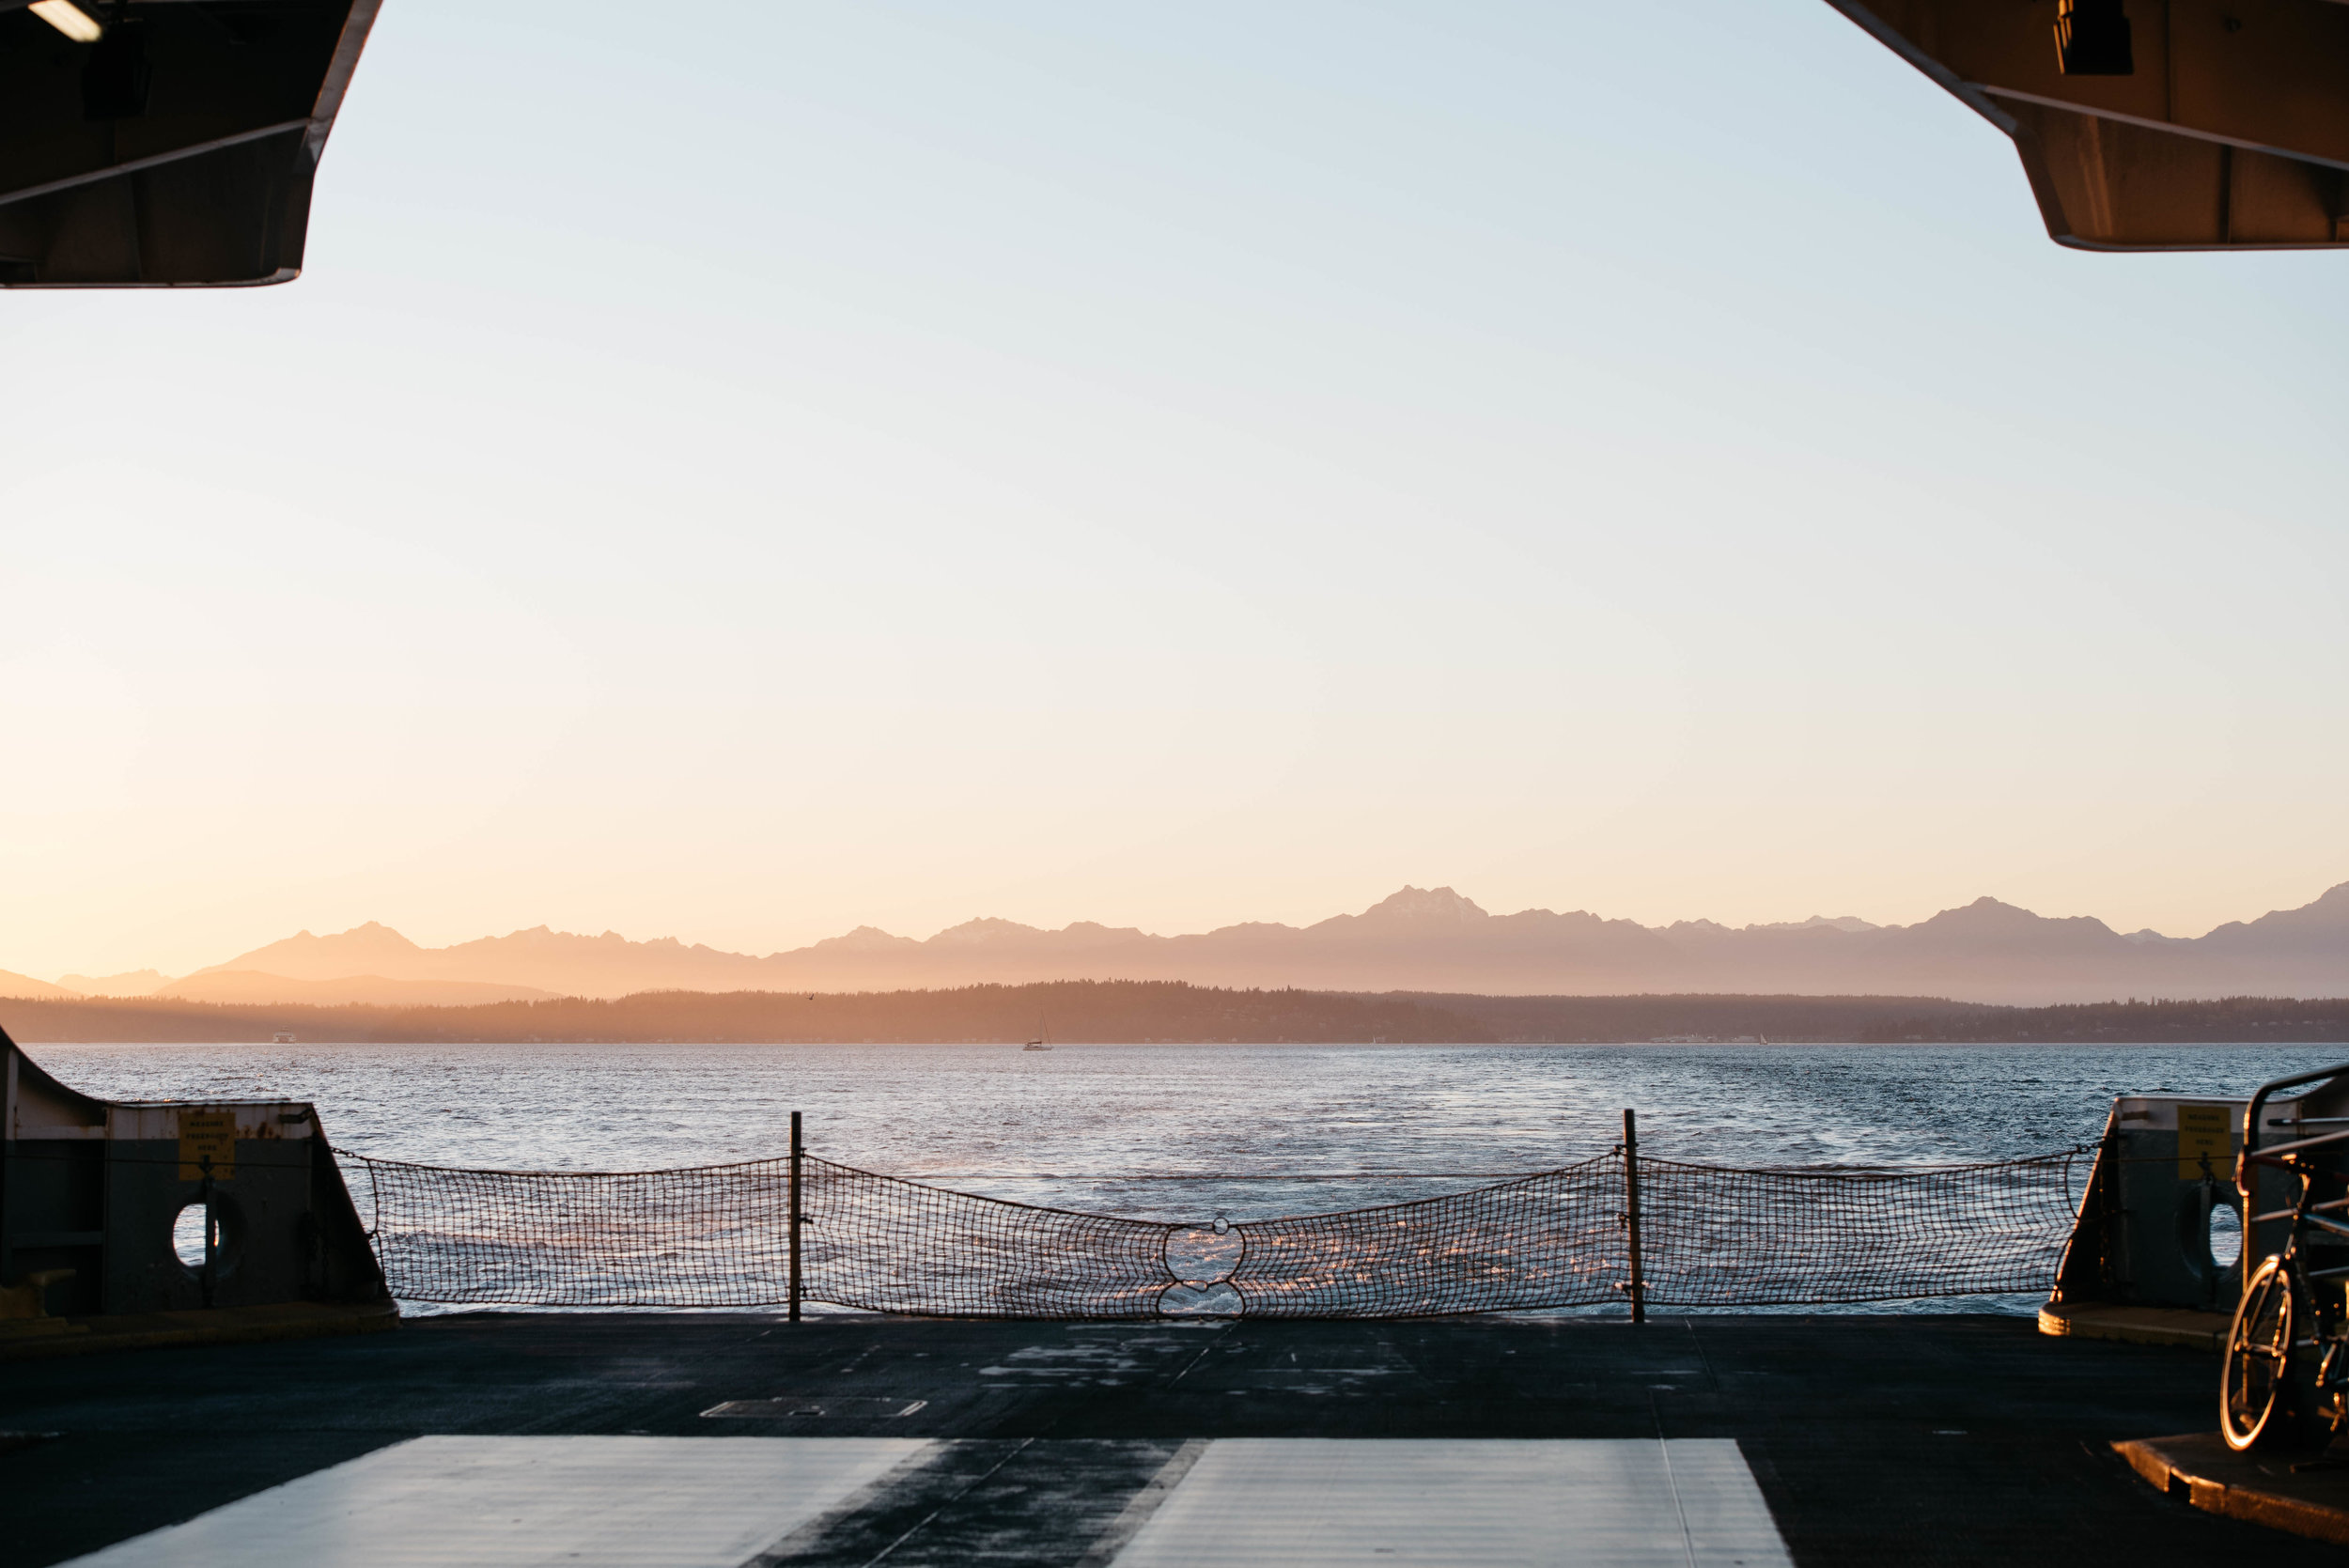 Seattle Ferry Travel photography mariah fisher-3.jpg